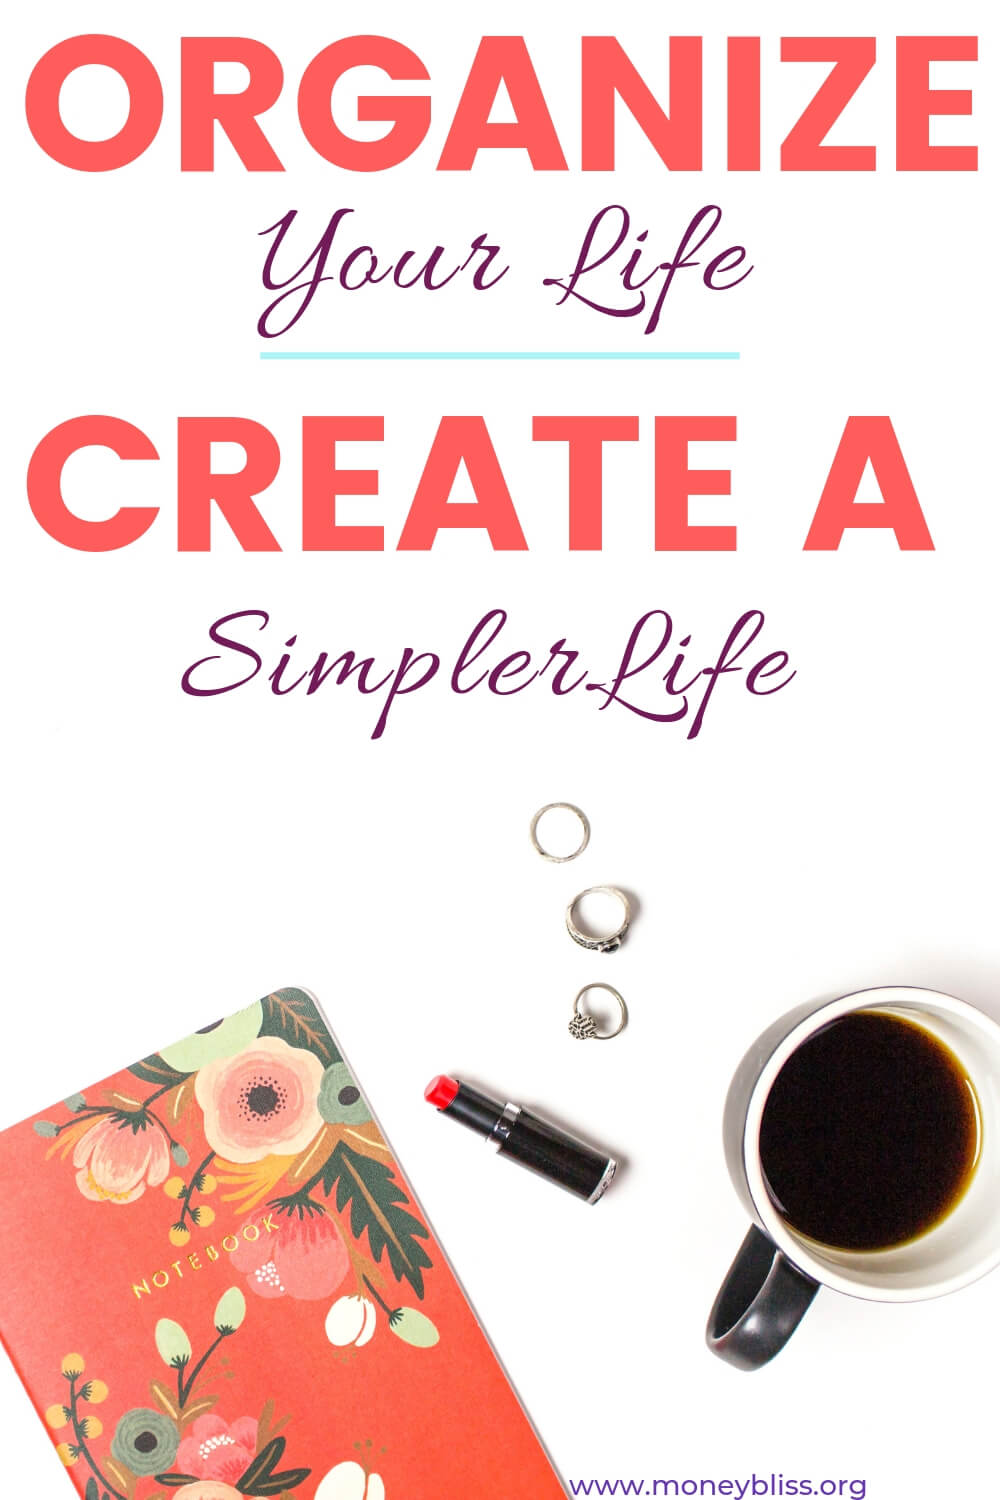 Ready for a simpler life? Lose the family stress? Begin to declutter all areas of your life. Find tips and ideas to organize your life. Easy ideas to organize your life with time management, planner organization, productivity, morning routines, and more. #organize #life #moneybliss